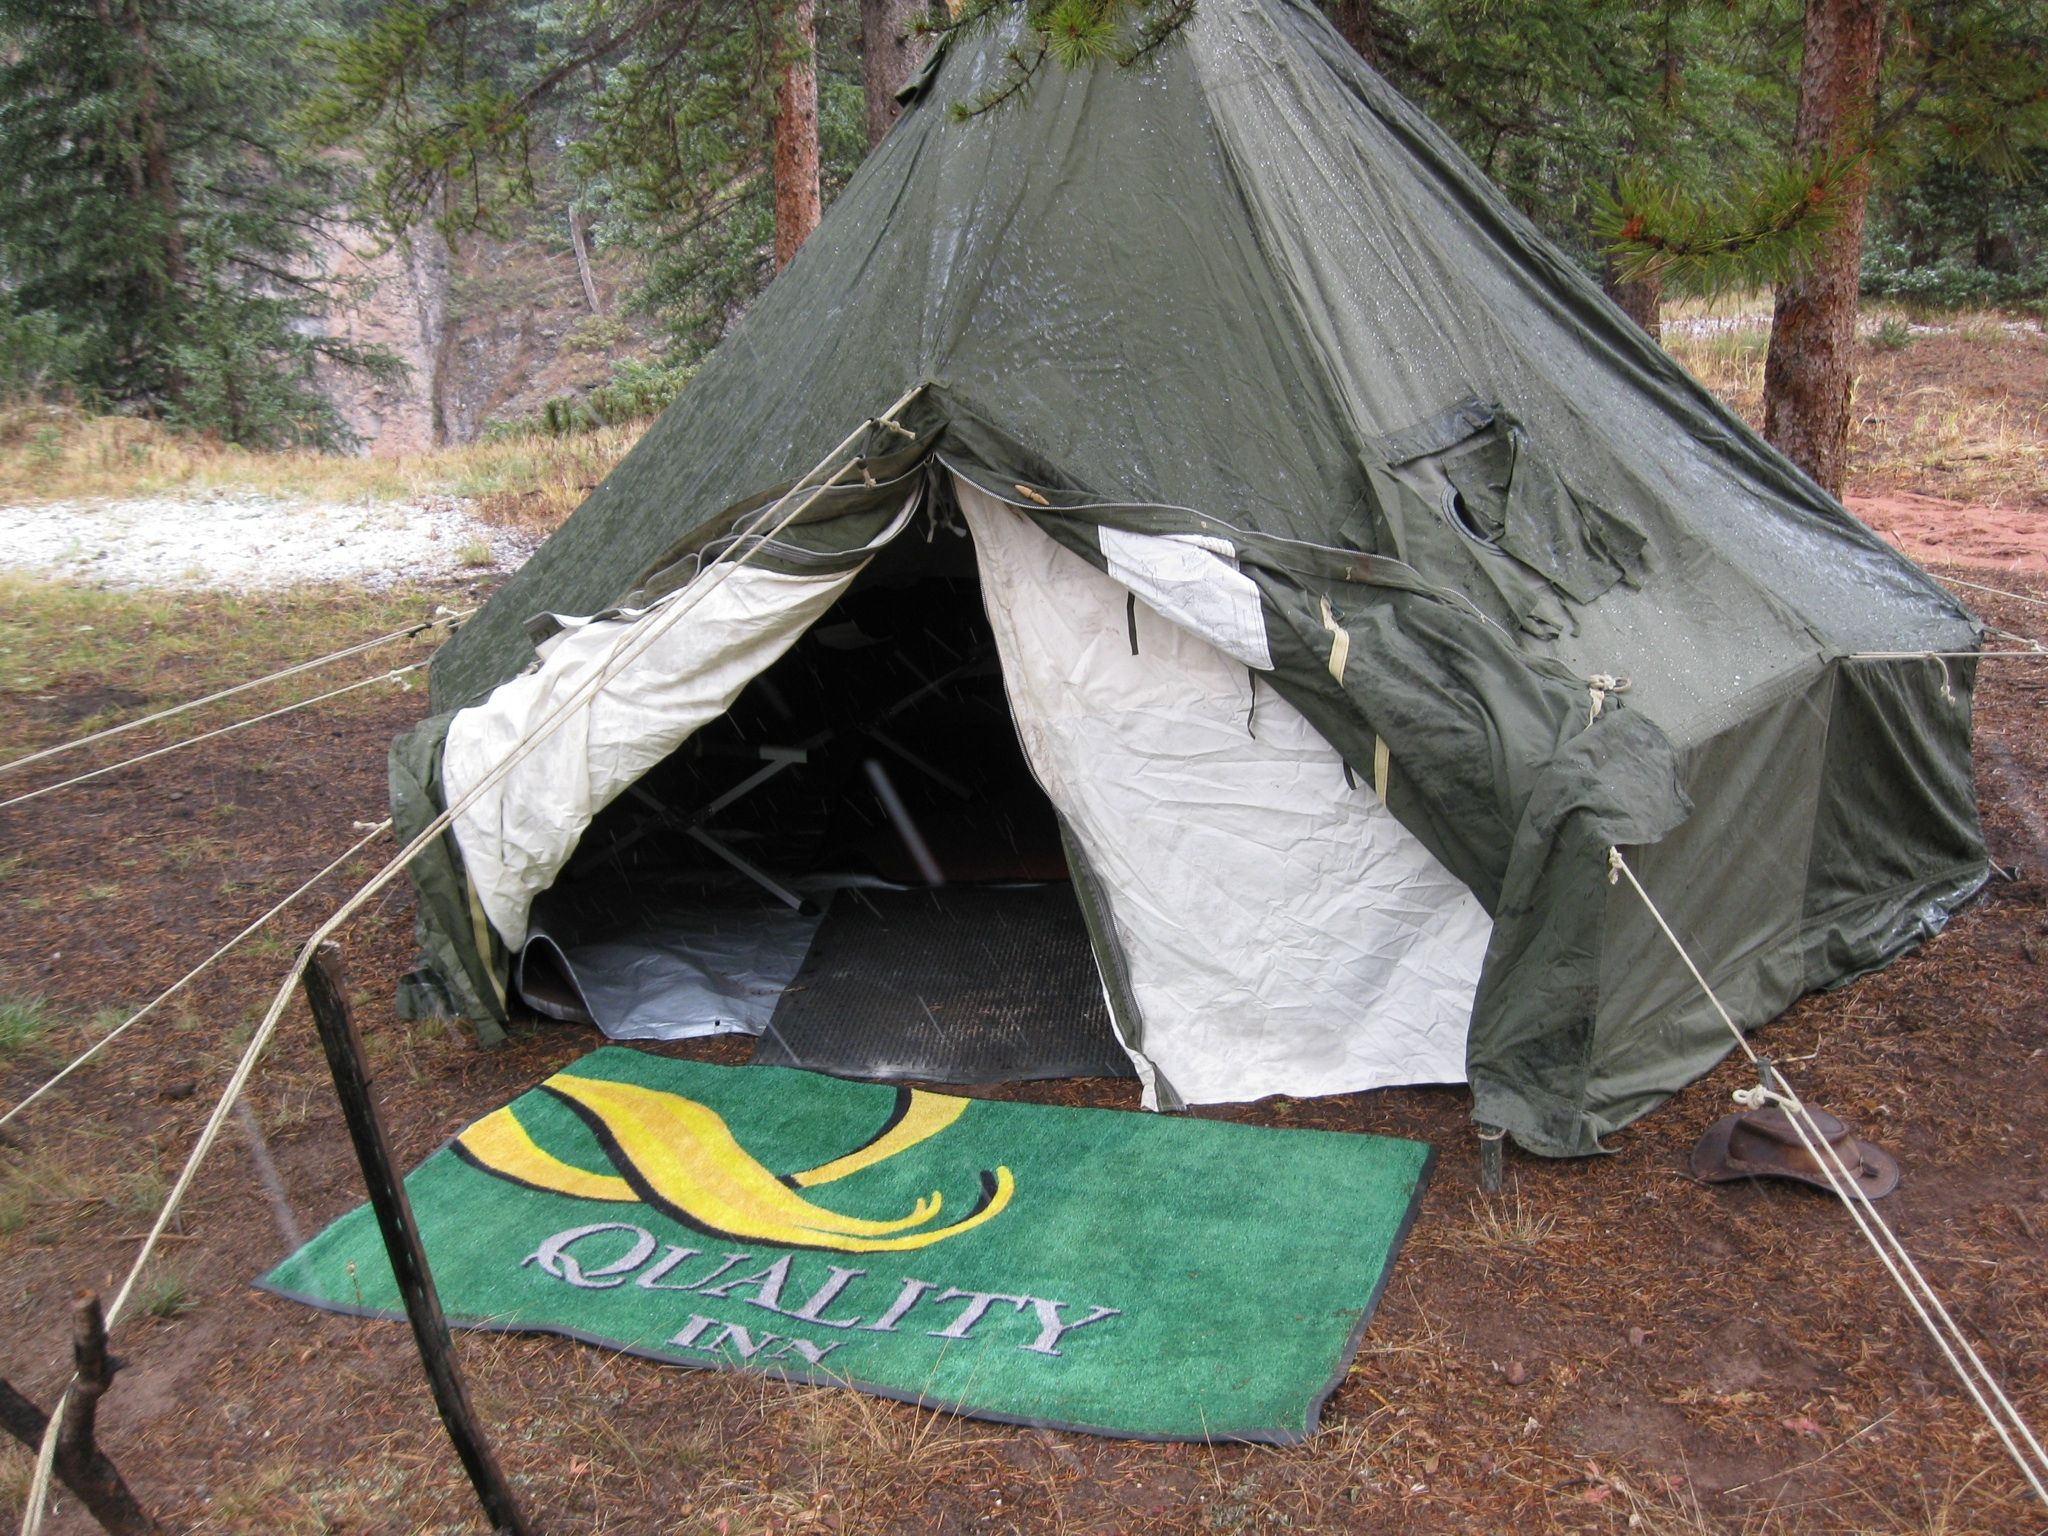 My Five Man Arctic Tent The White Liner Created An Air Pocket To Insulate